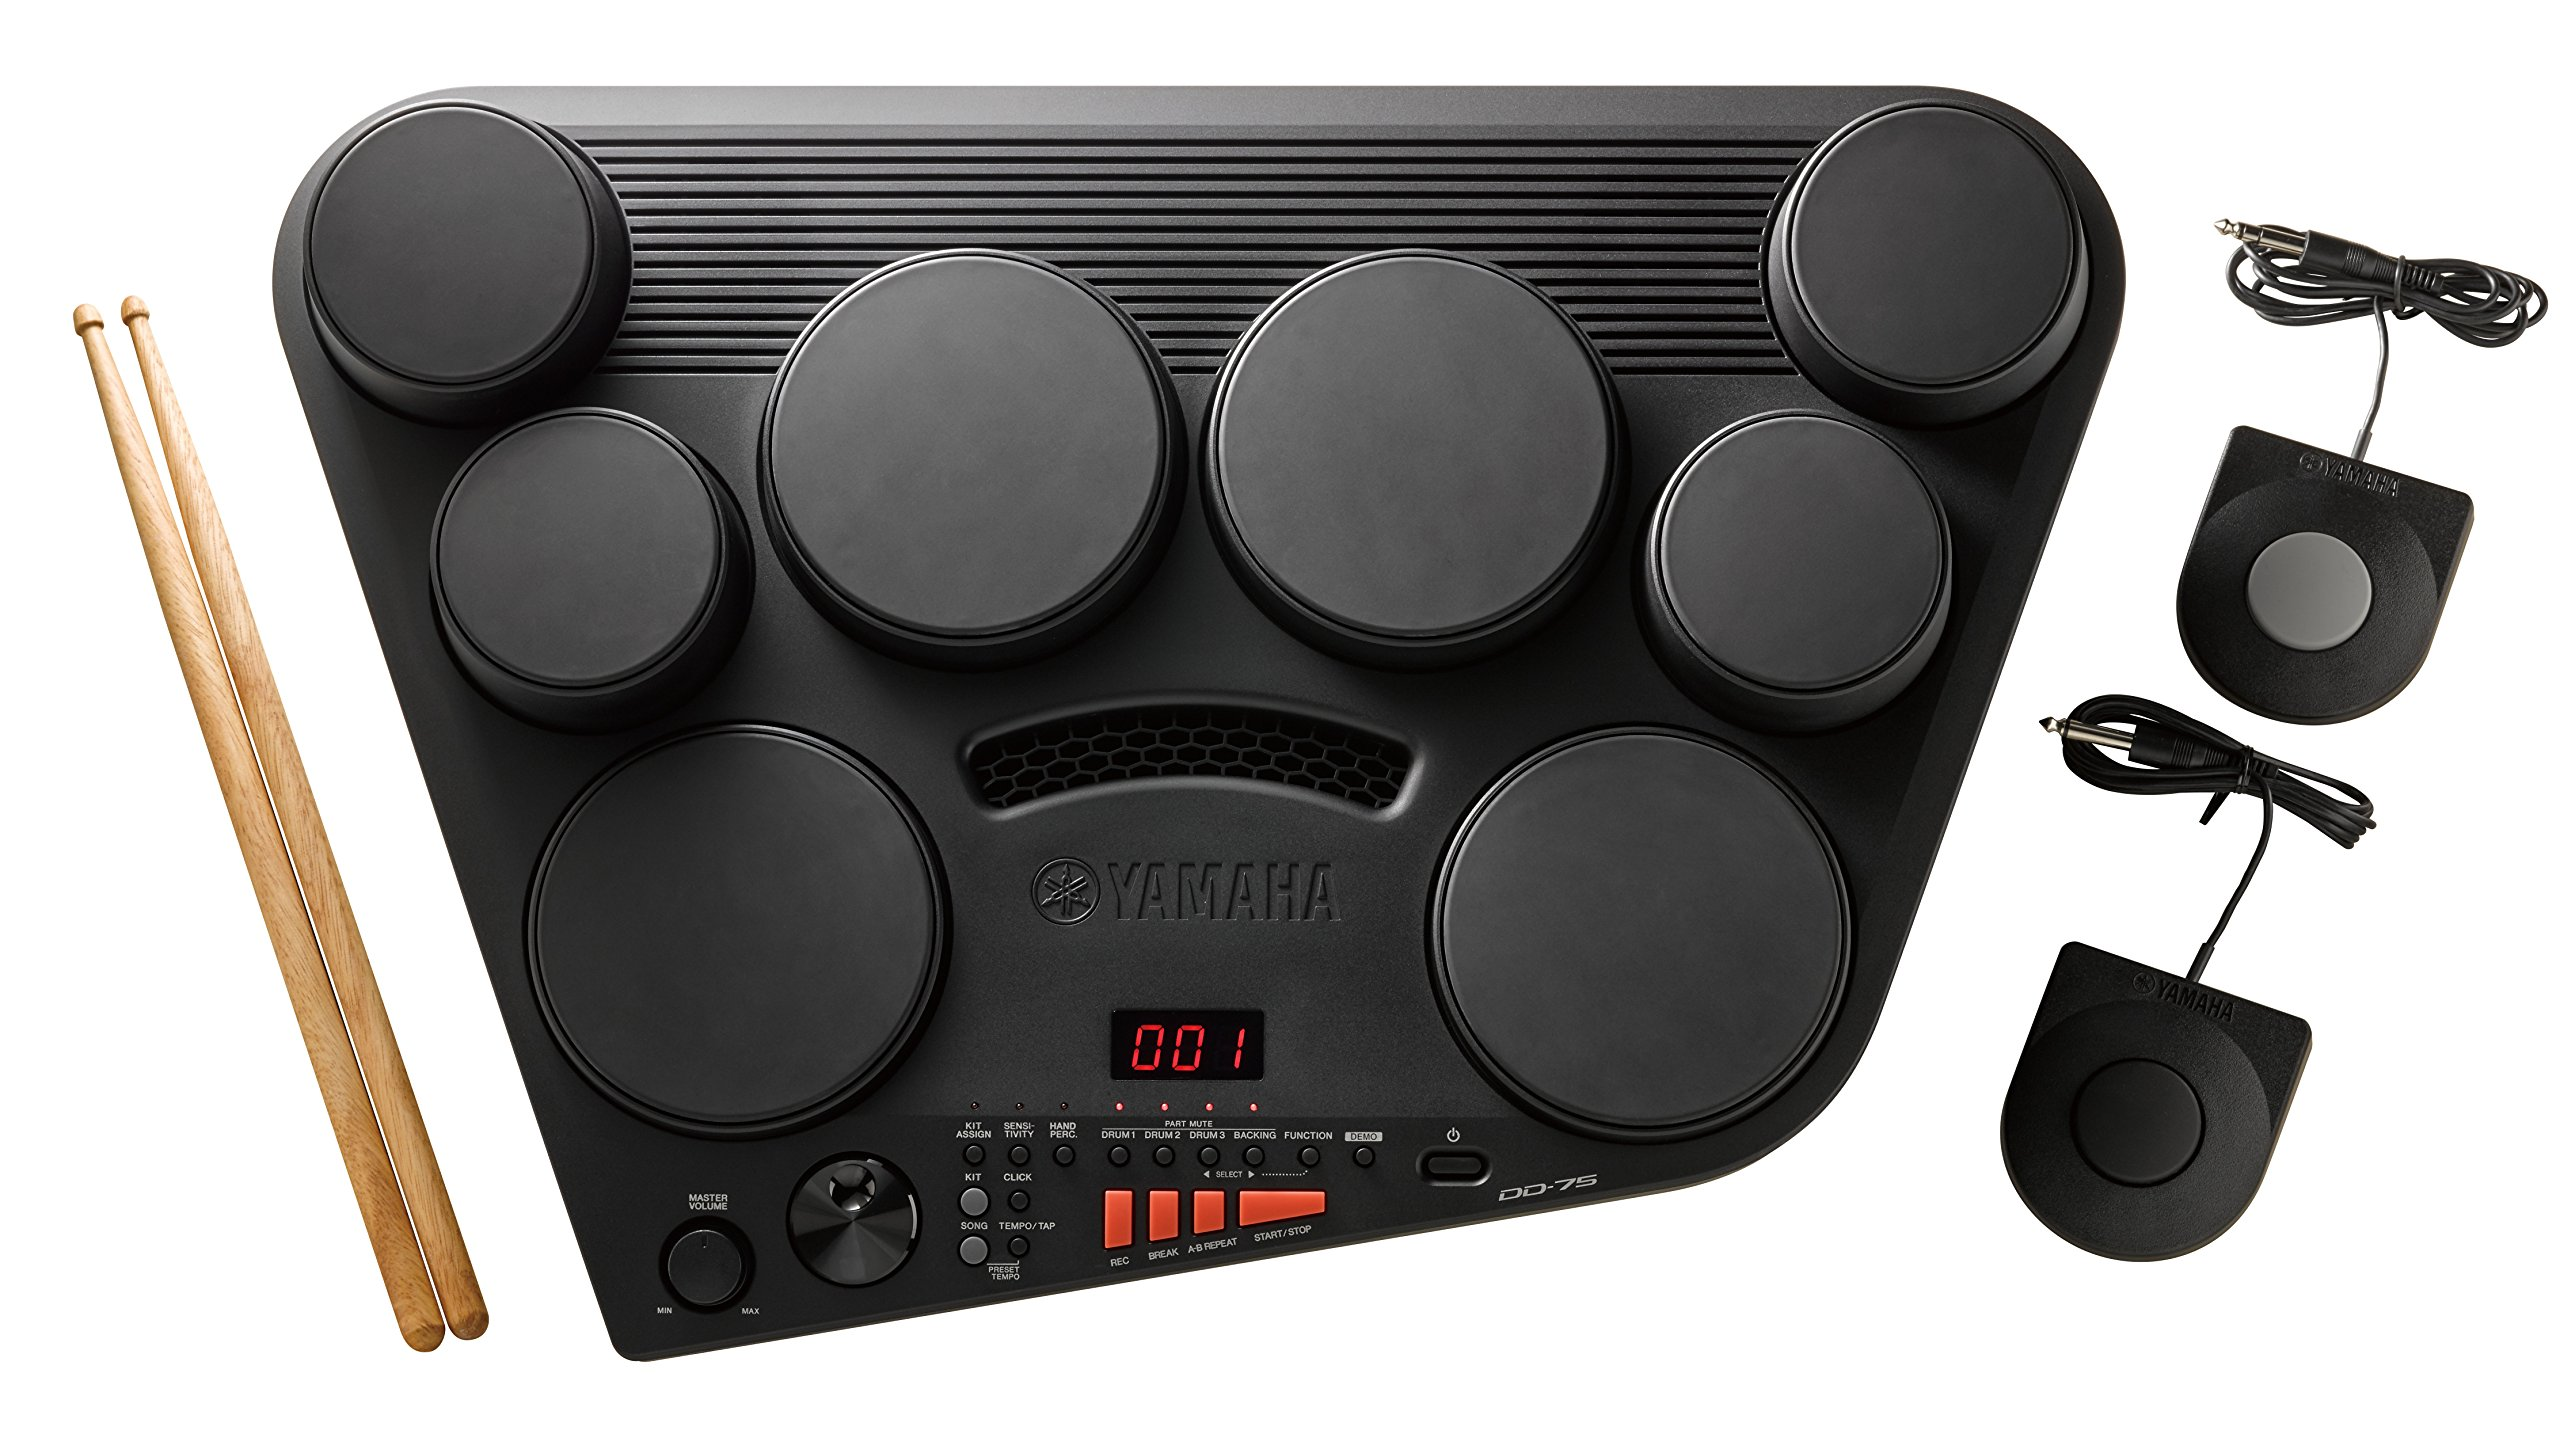 Yamaha DD75 Portable Digital Drums with 2 Pedals and Drumsticks - Power Adapter sold separately by YAMAHA